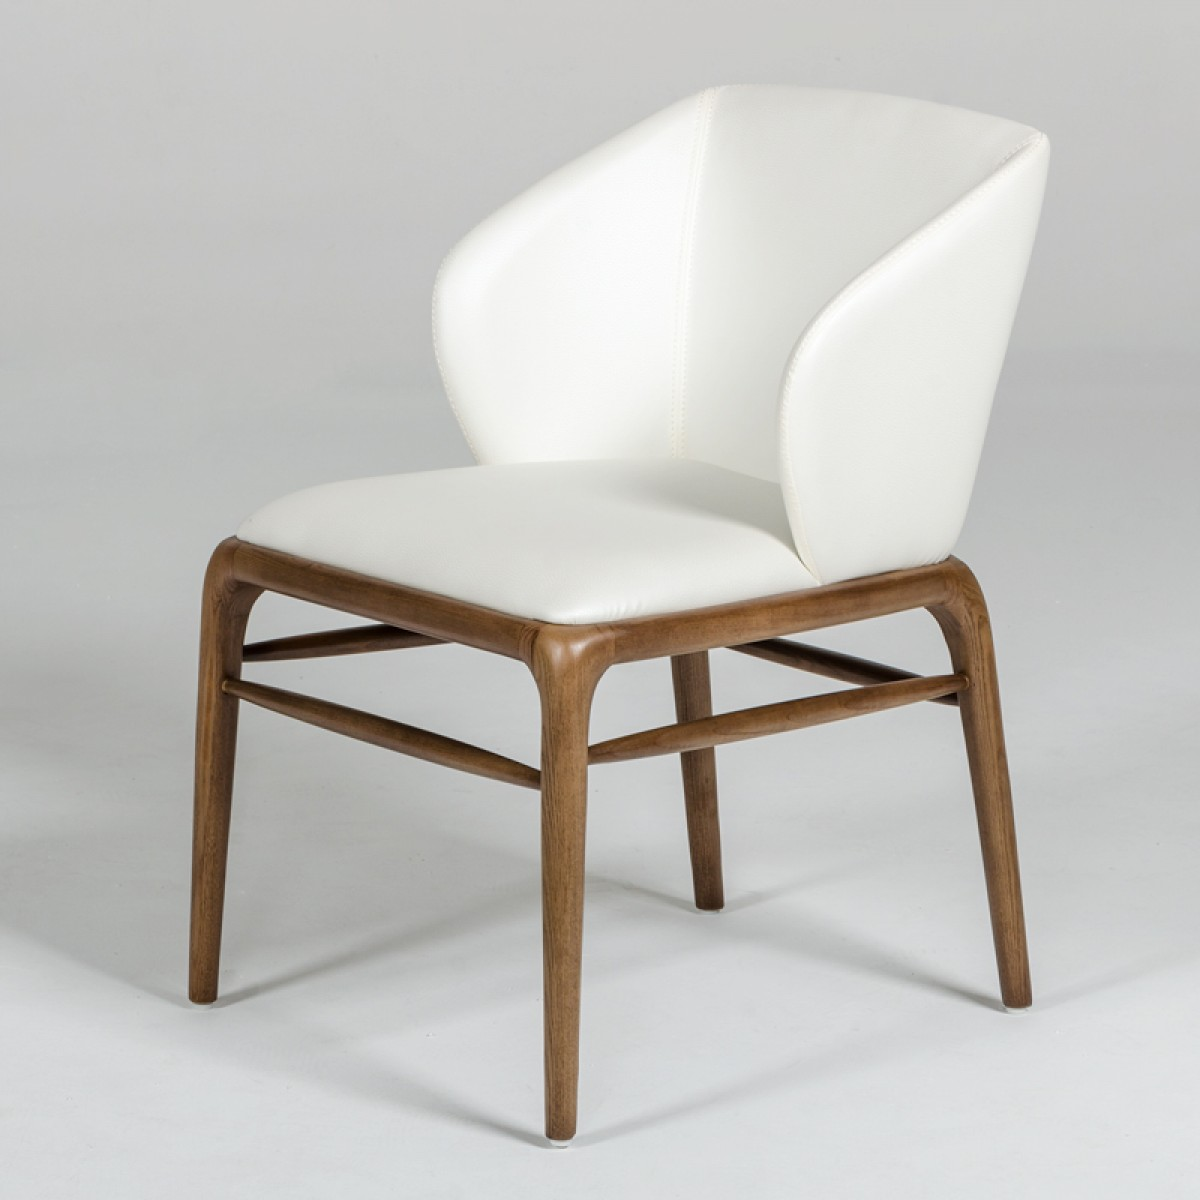 Contemporary Modern Dining Chairs: Modrest Kipling Modern Cream & Walnut Dining Chair